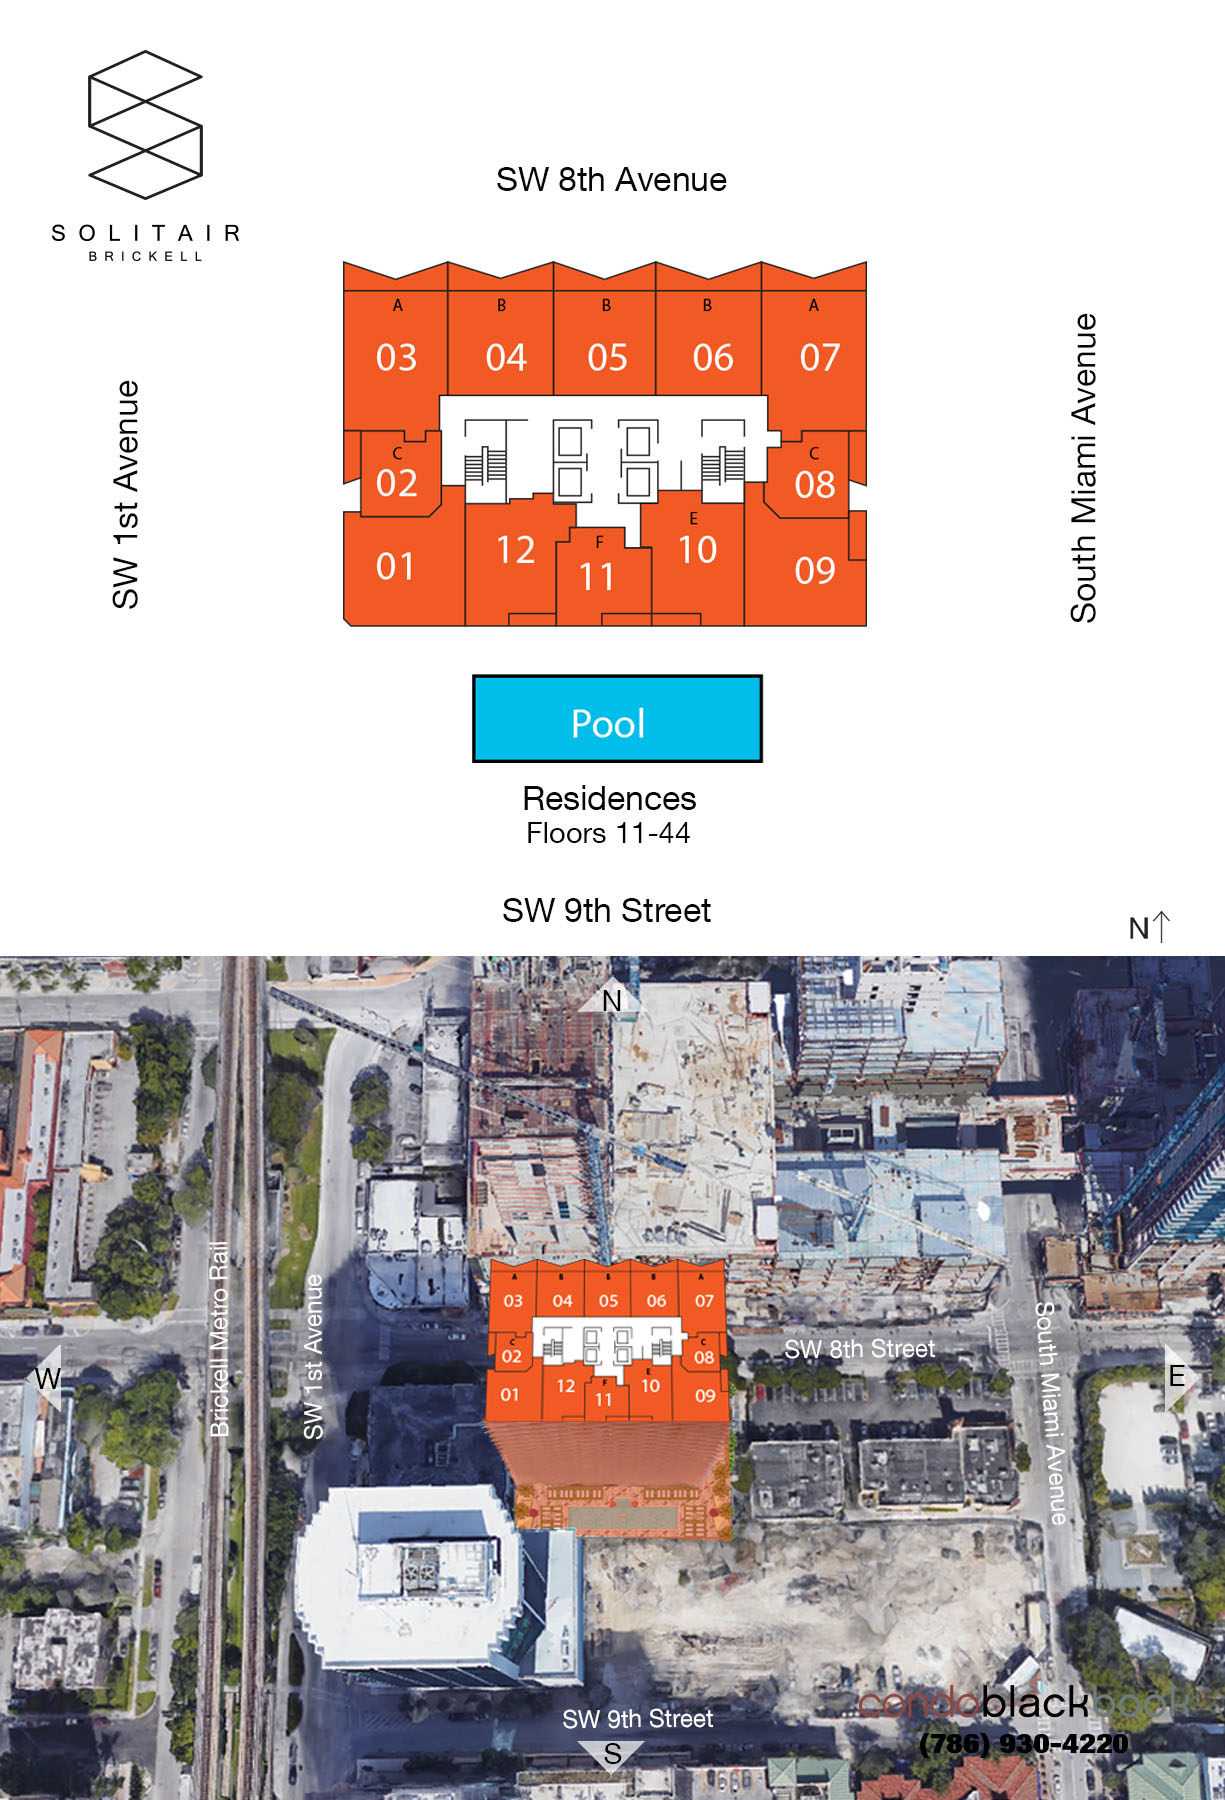 Solitair Brickell Floor Plans